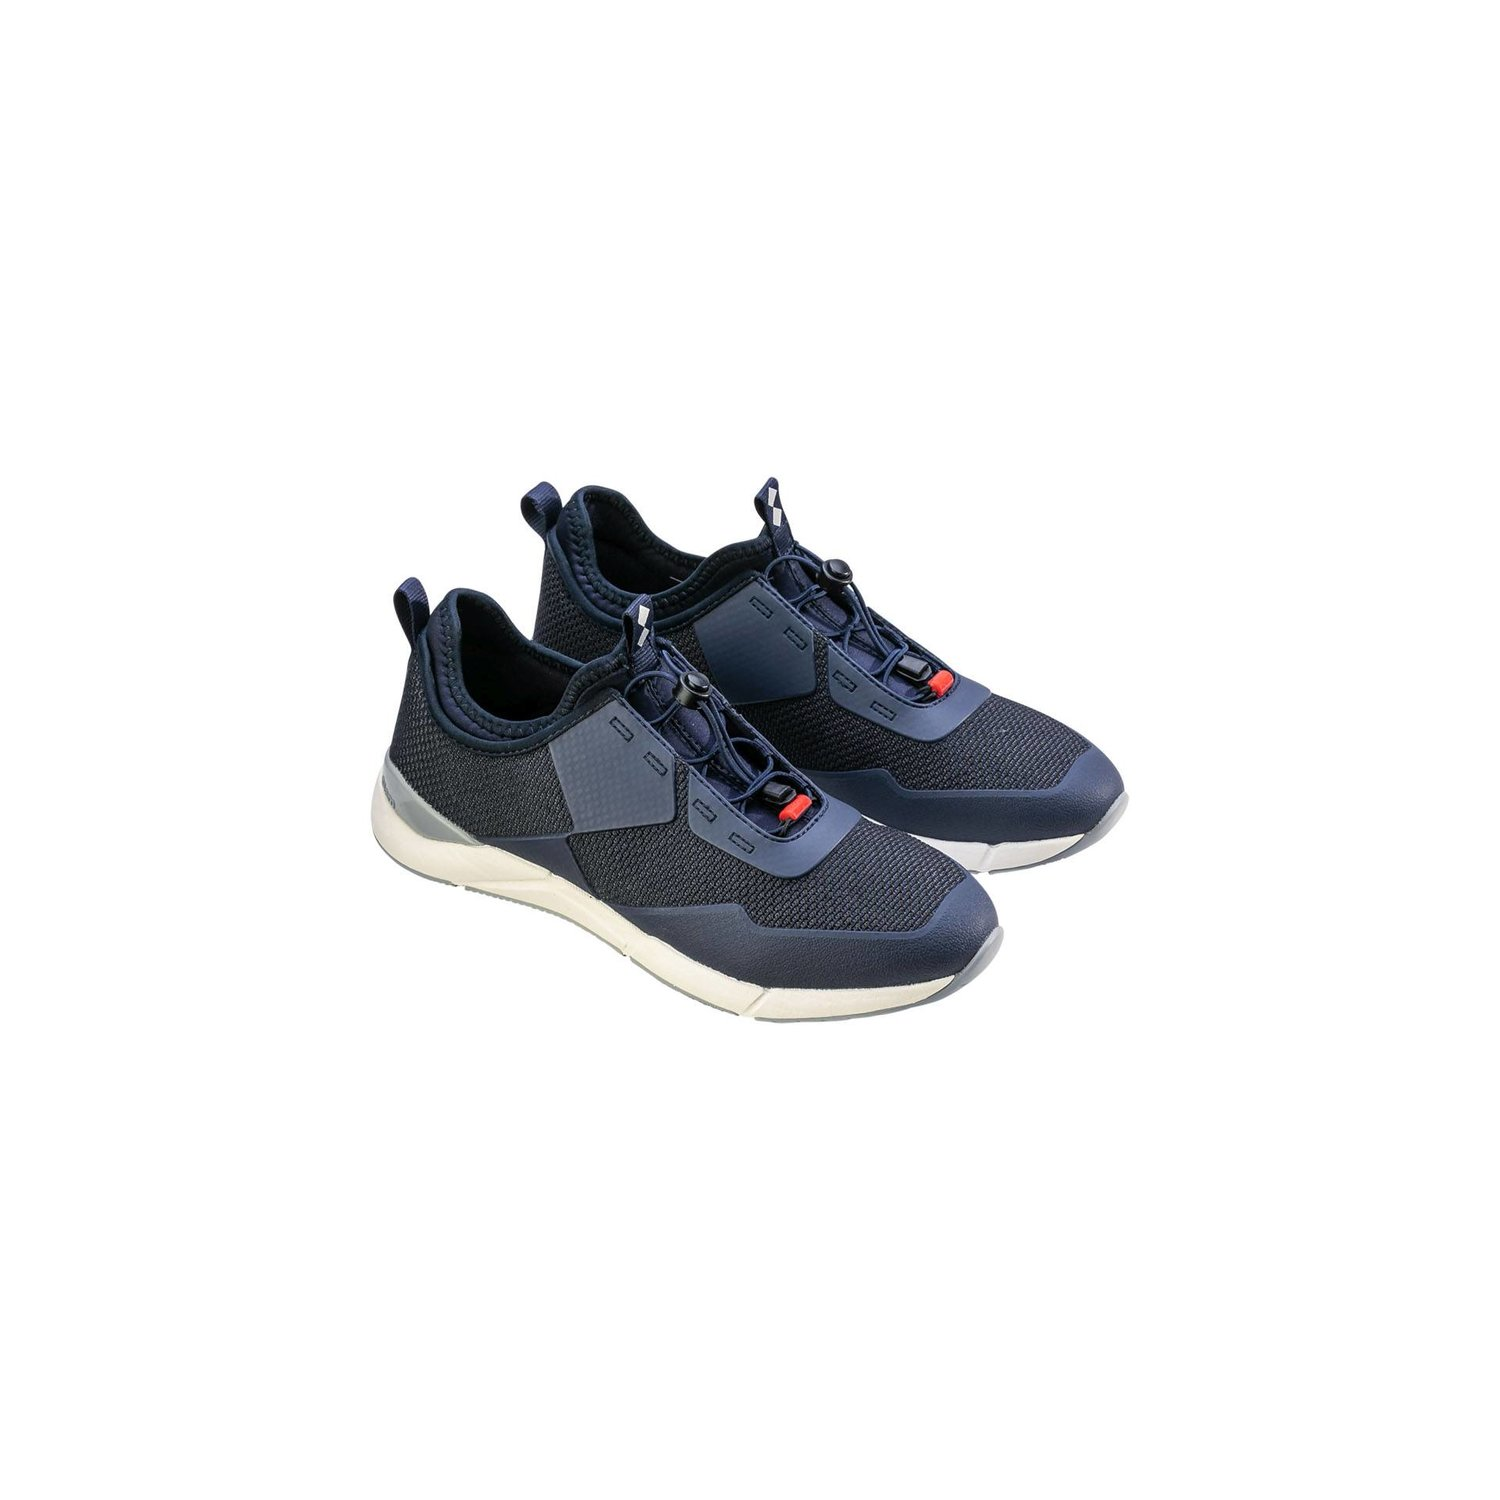 Win-D Technical Shoe - Navy